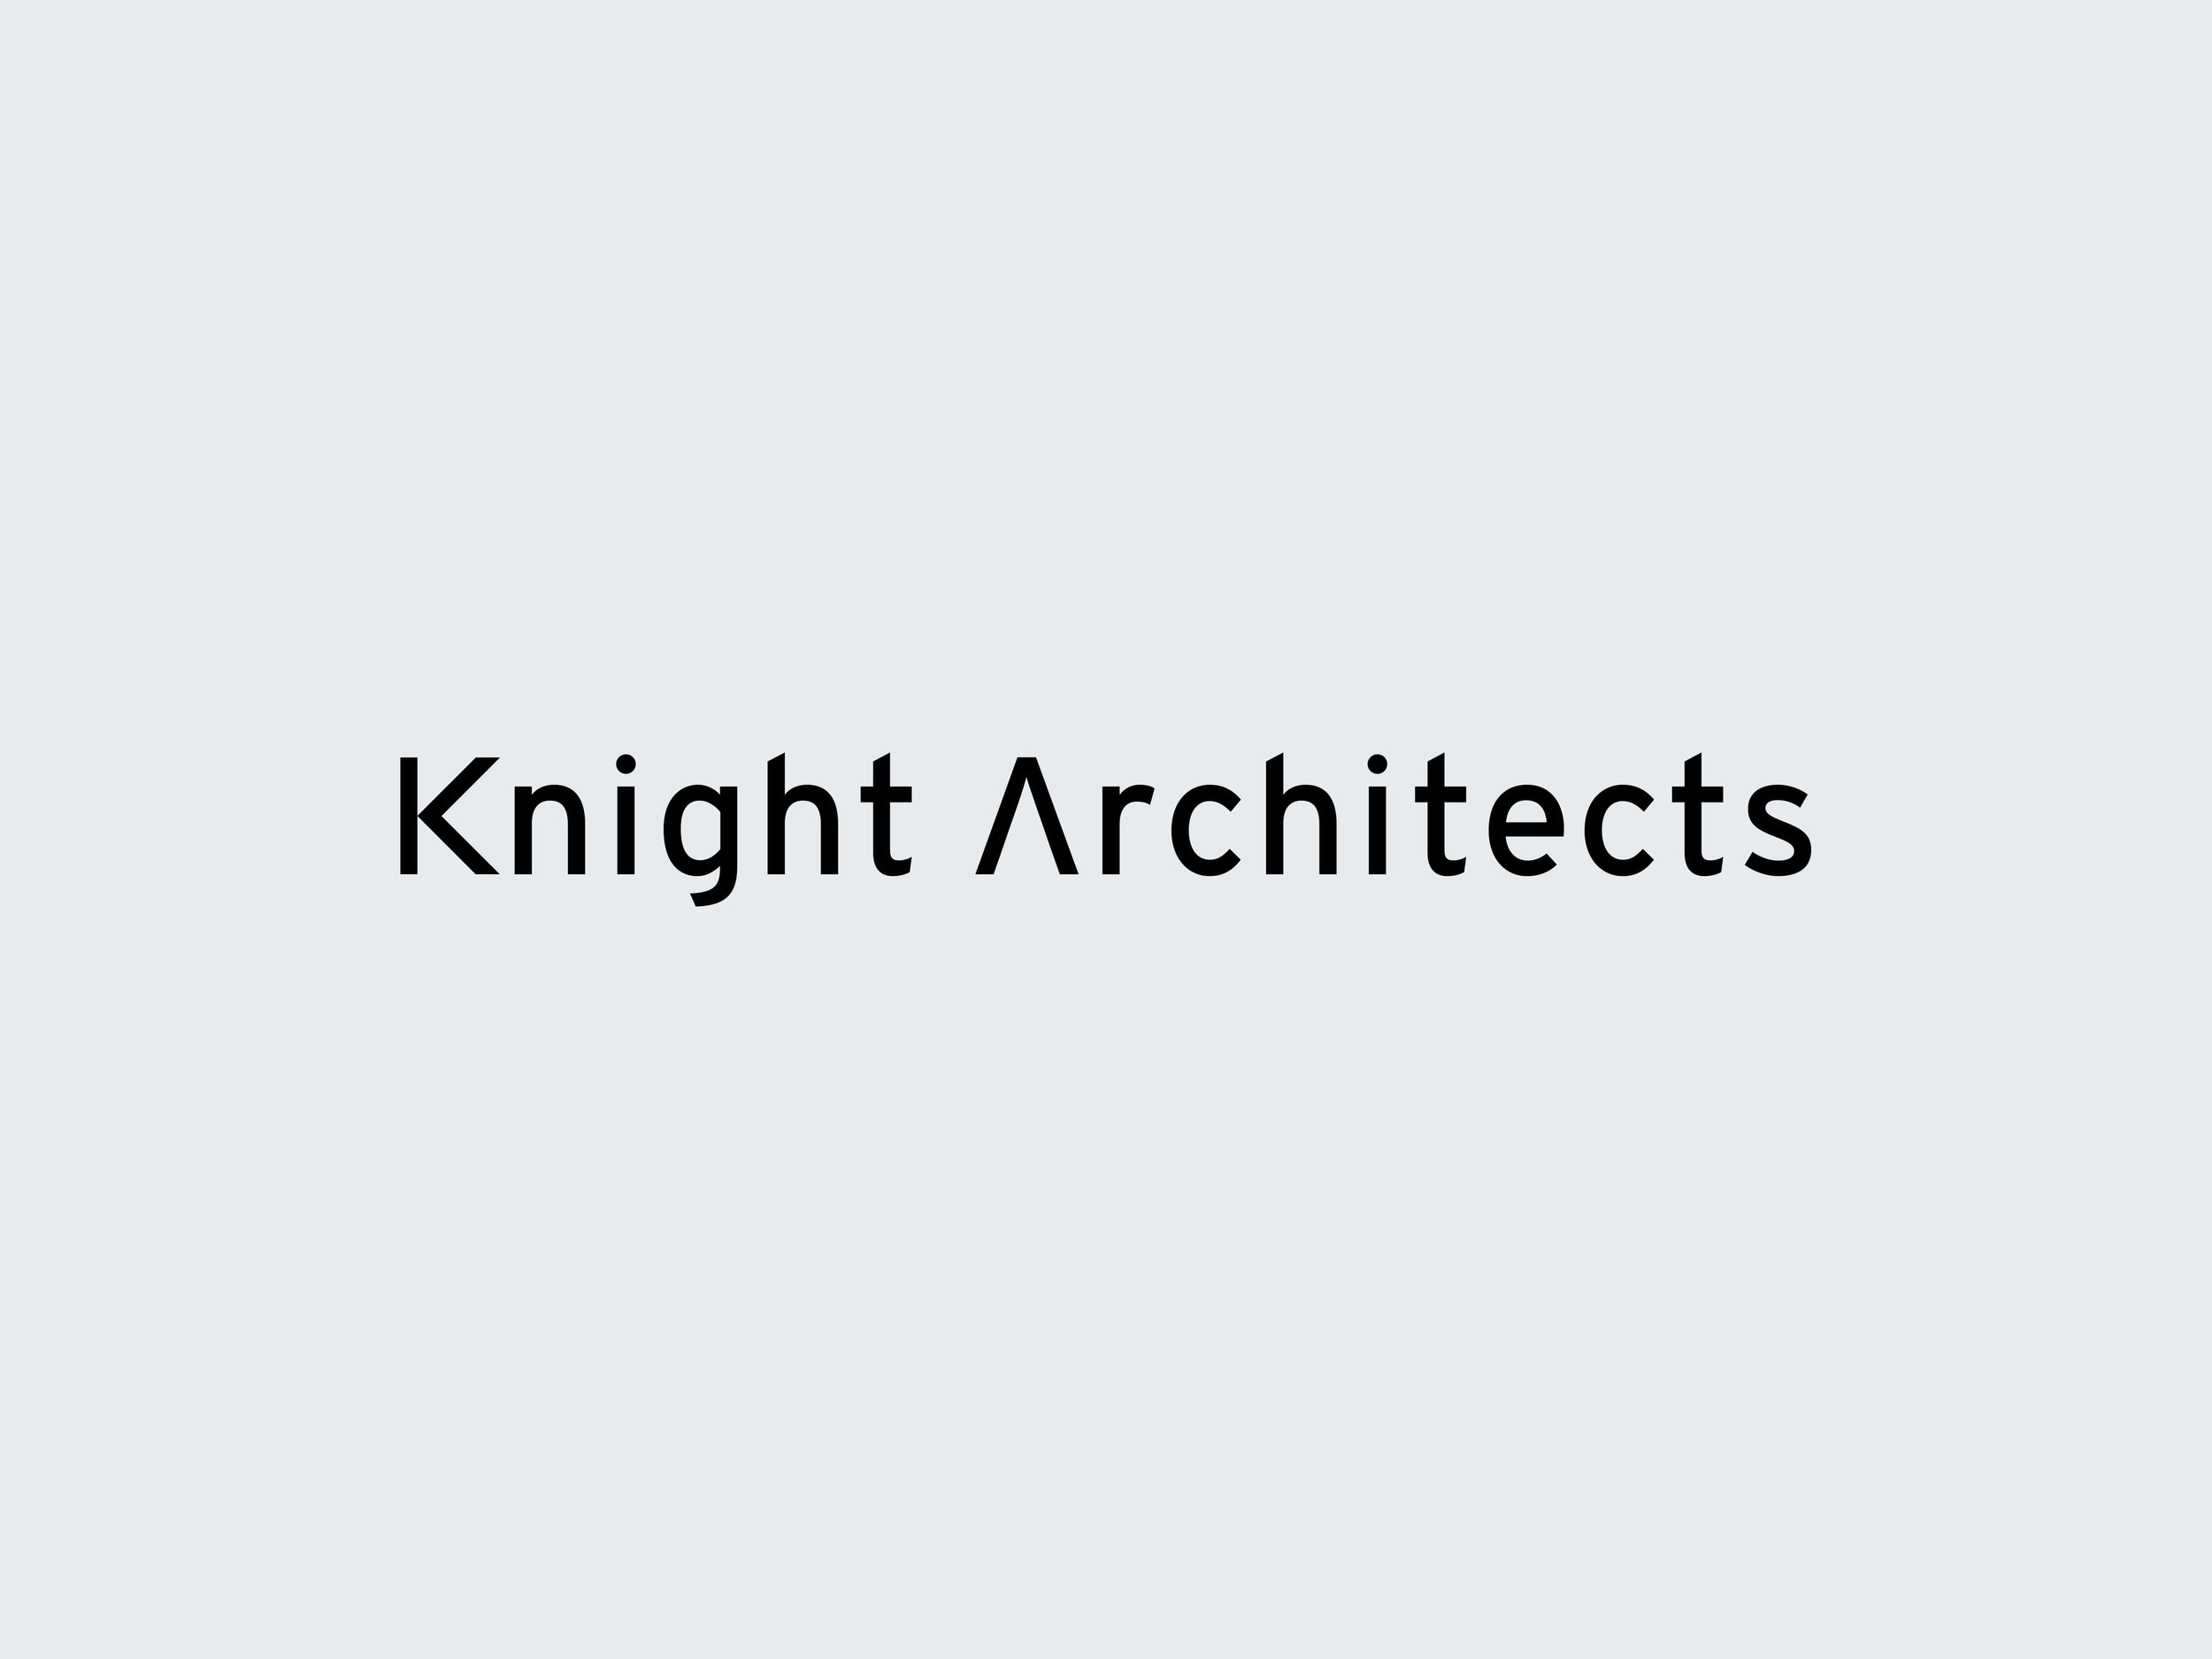 Knights-Architects.jpg